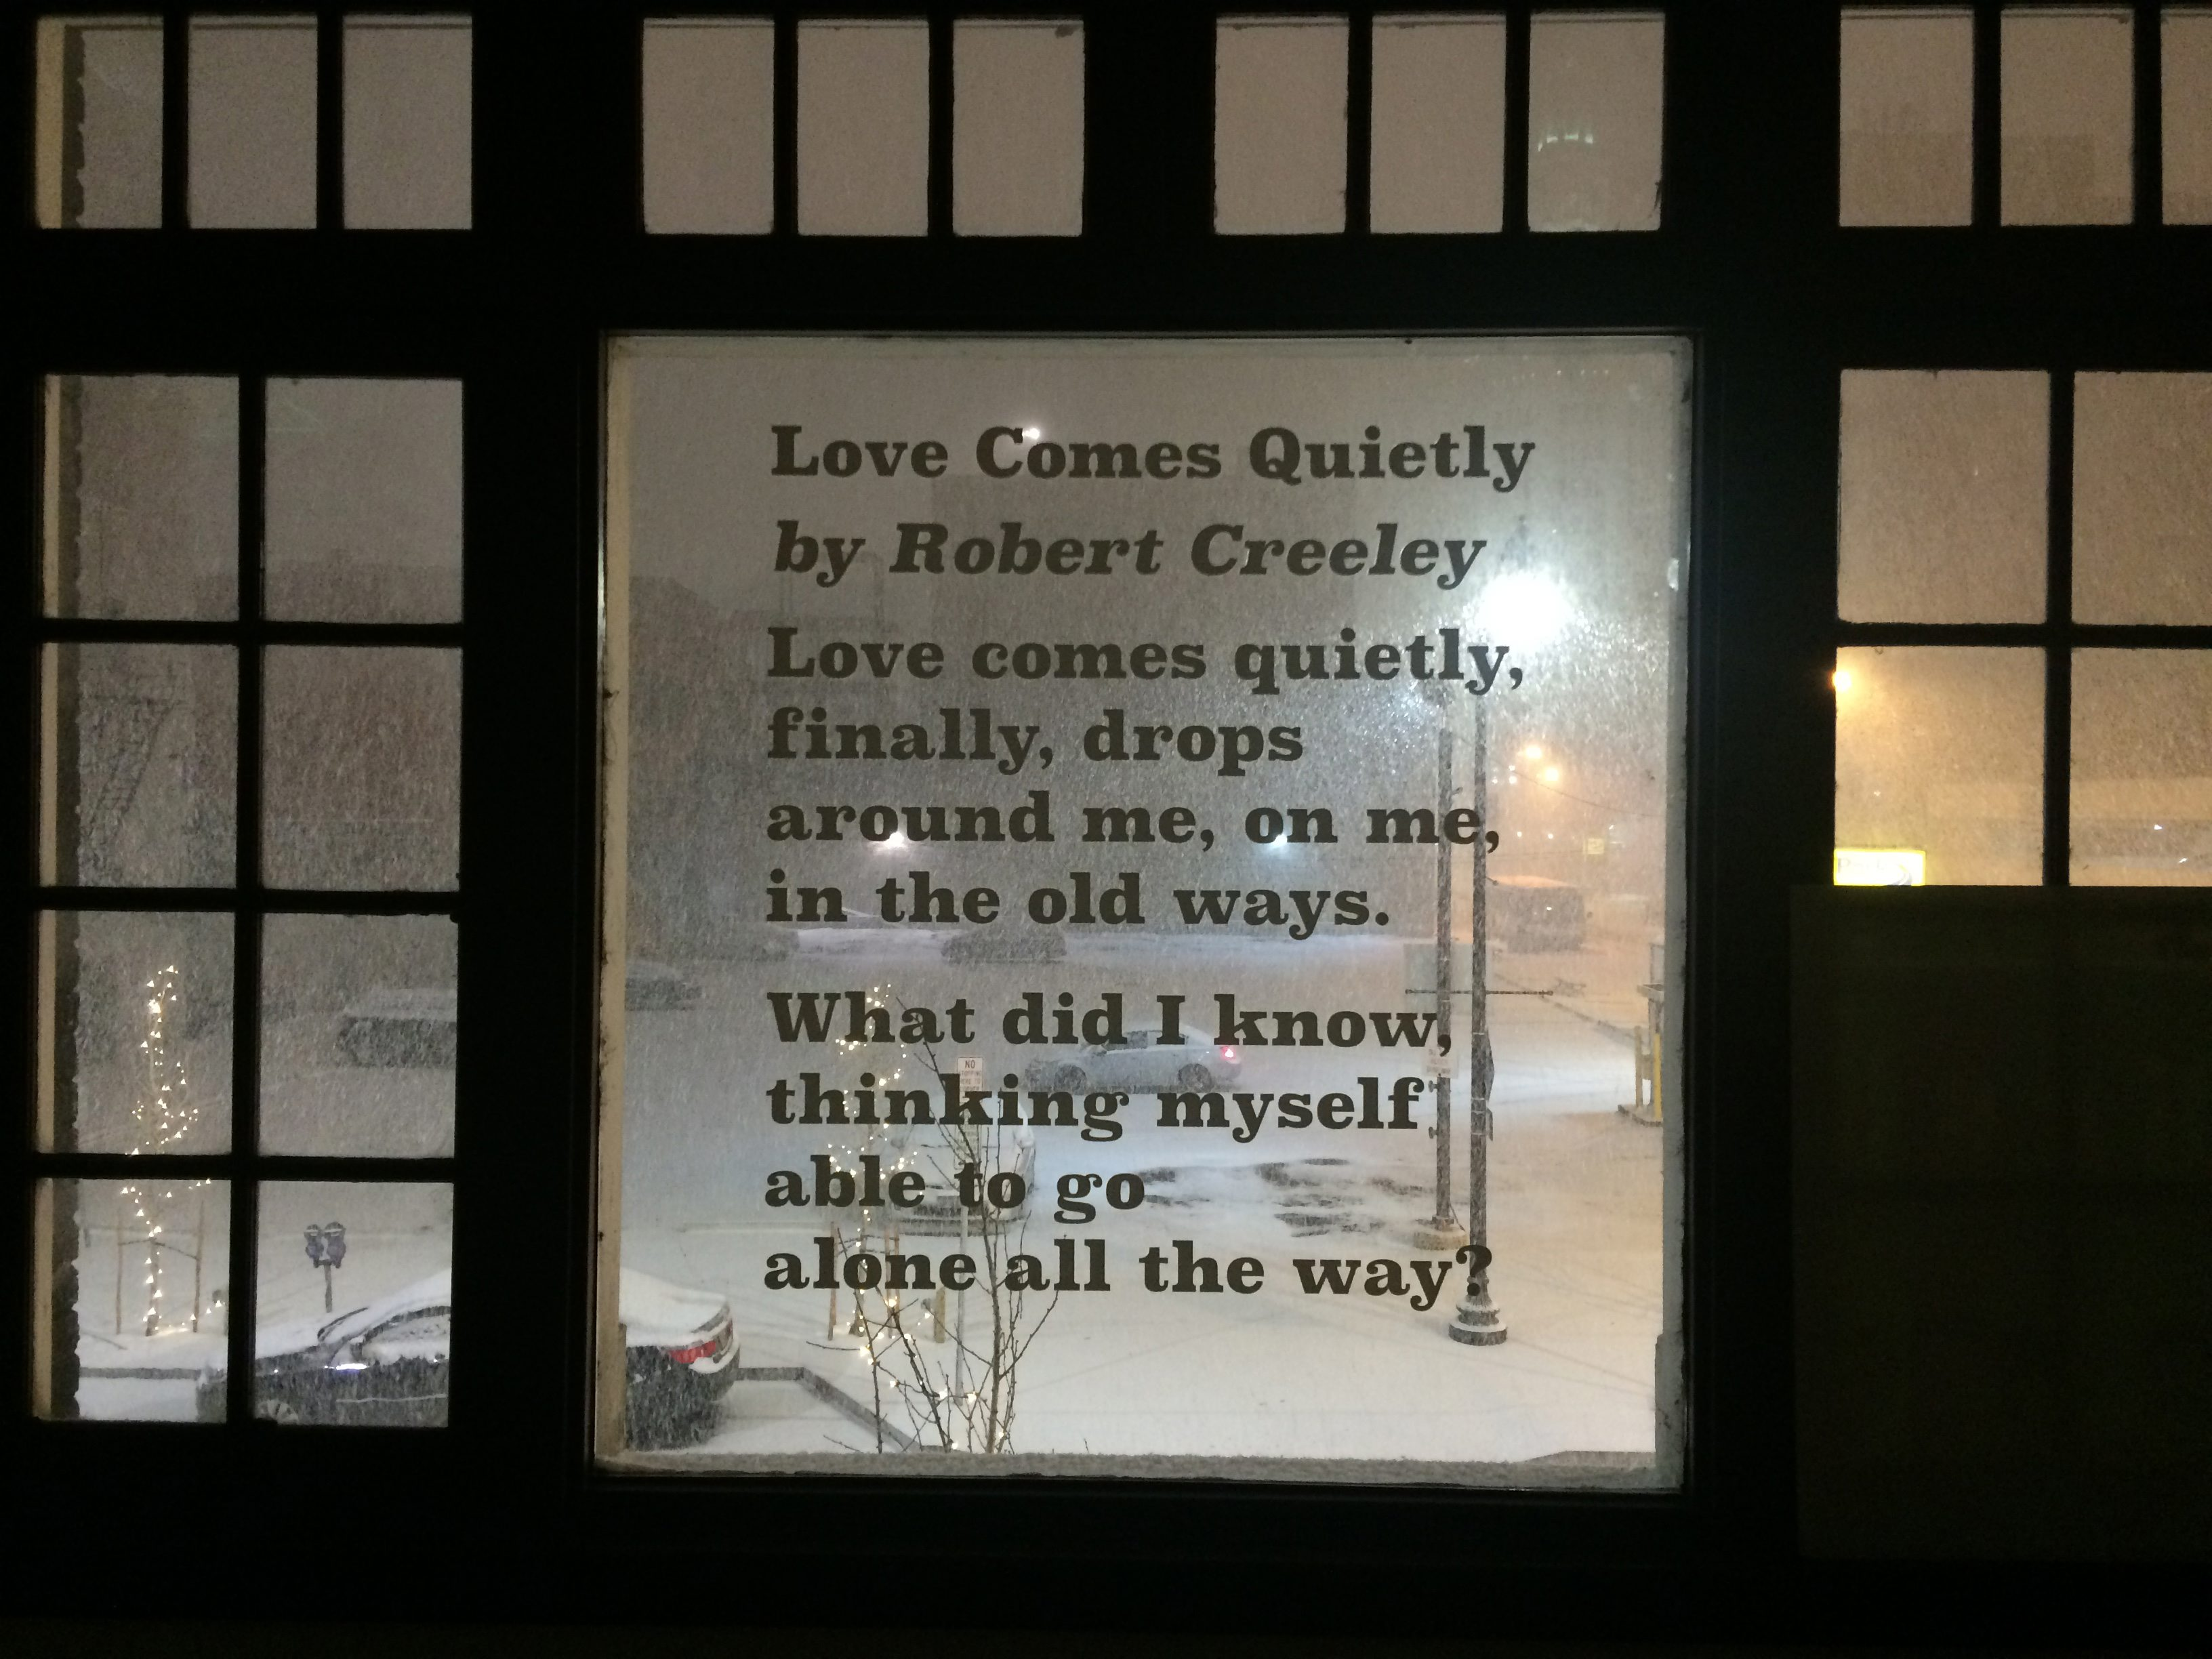 A poem by Robert Creeley hangs in the window of the Just Buffalo Literary Center, which received a $70,000 grant from the National Endowment for the Arts to fund a community literature and gardening project.